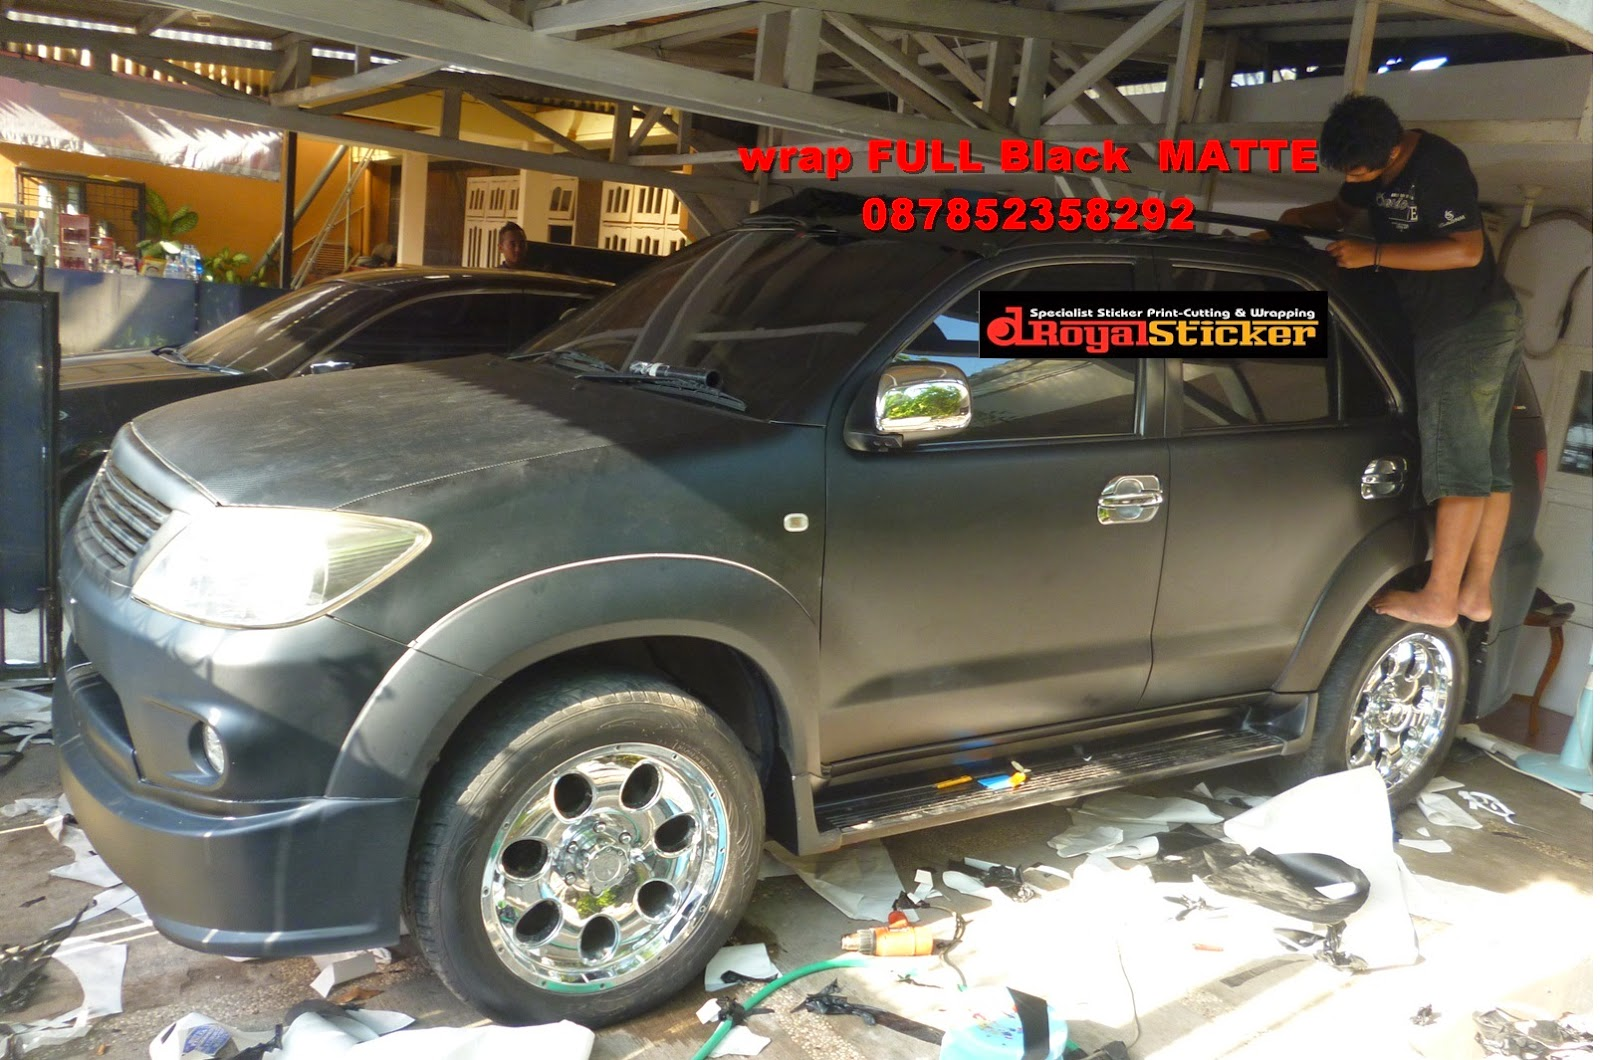 wrapping fortuner black matte